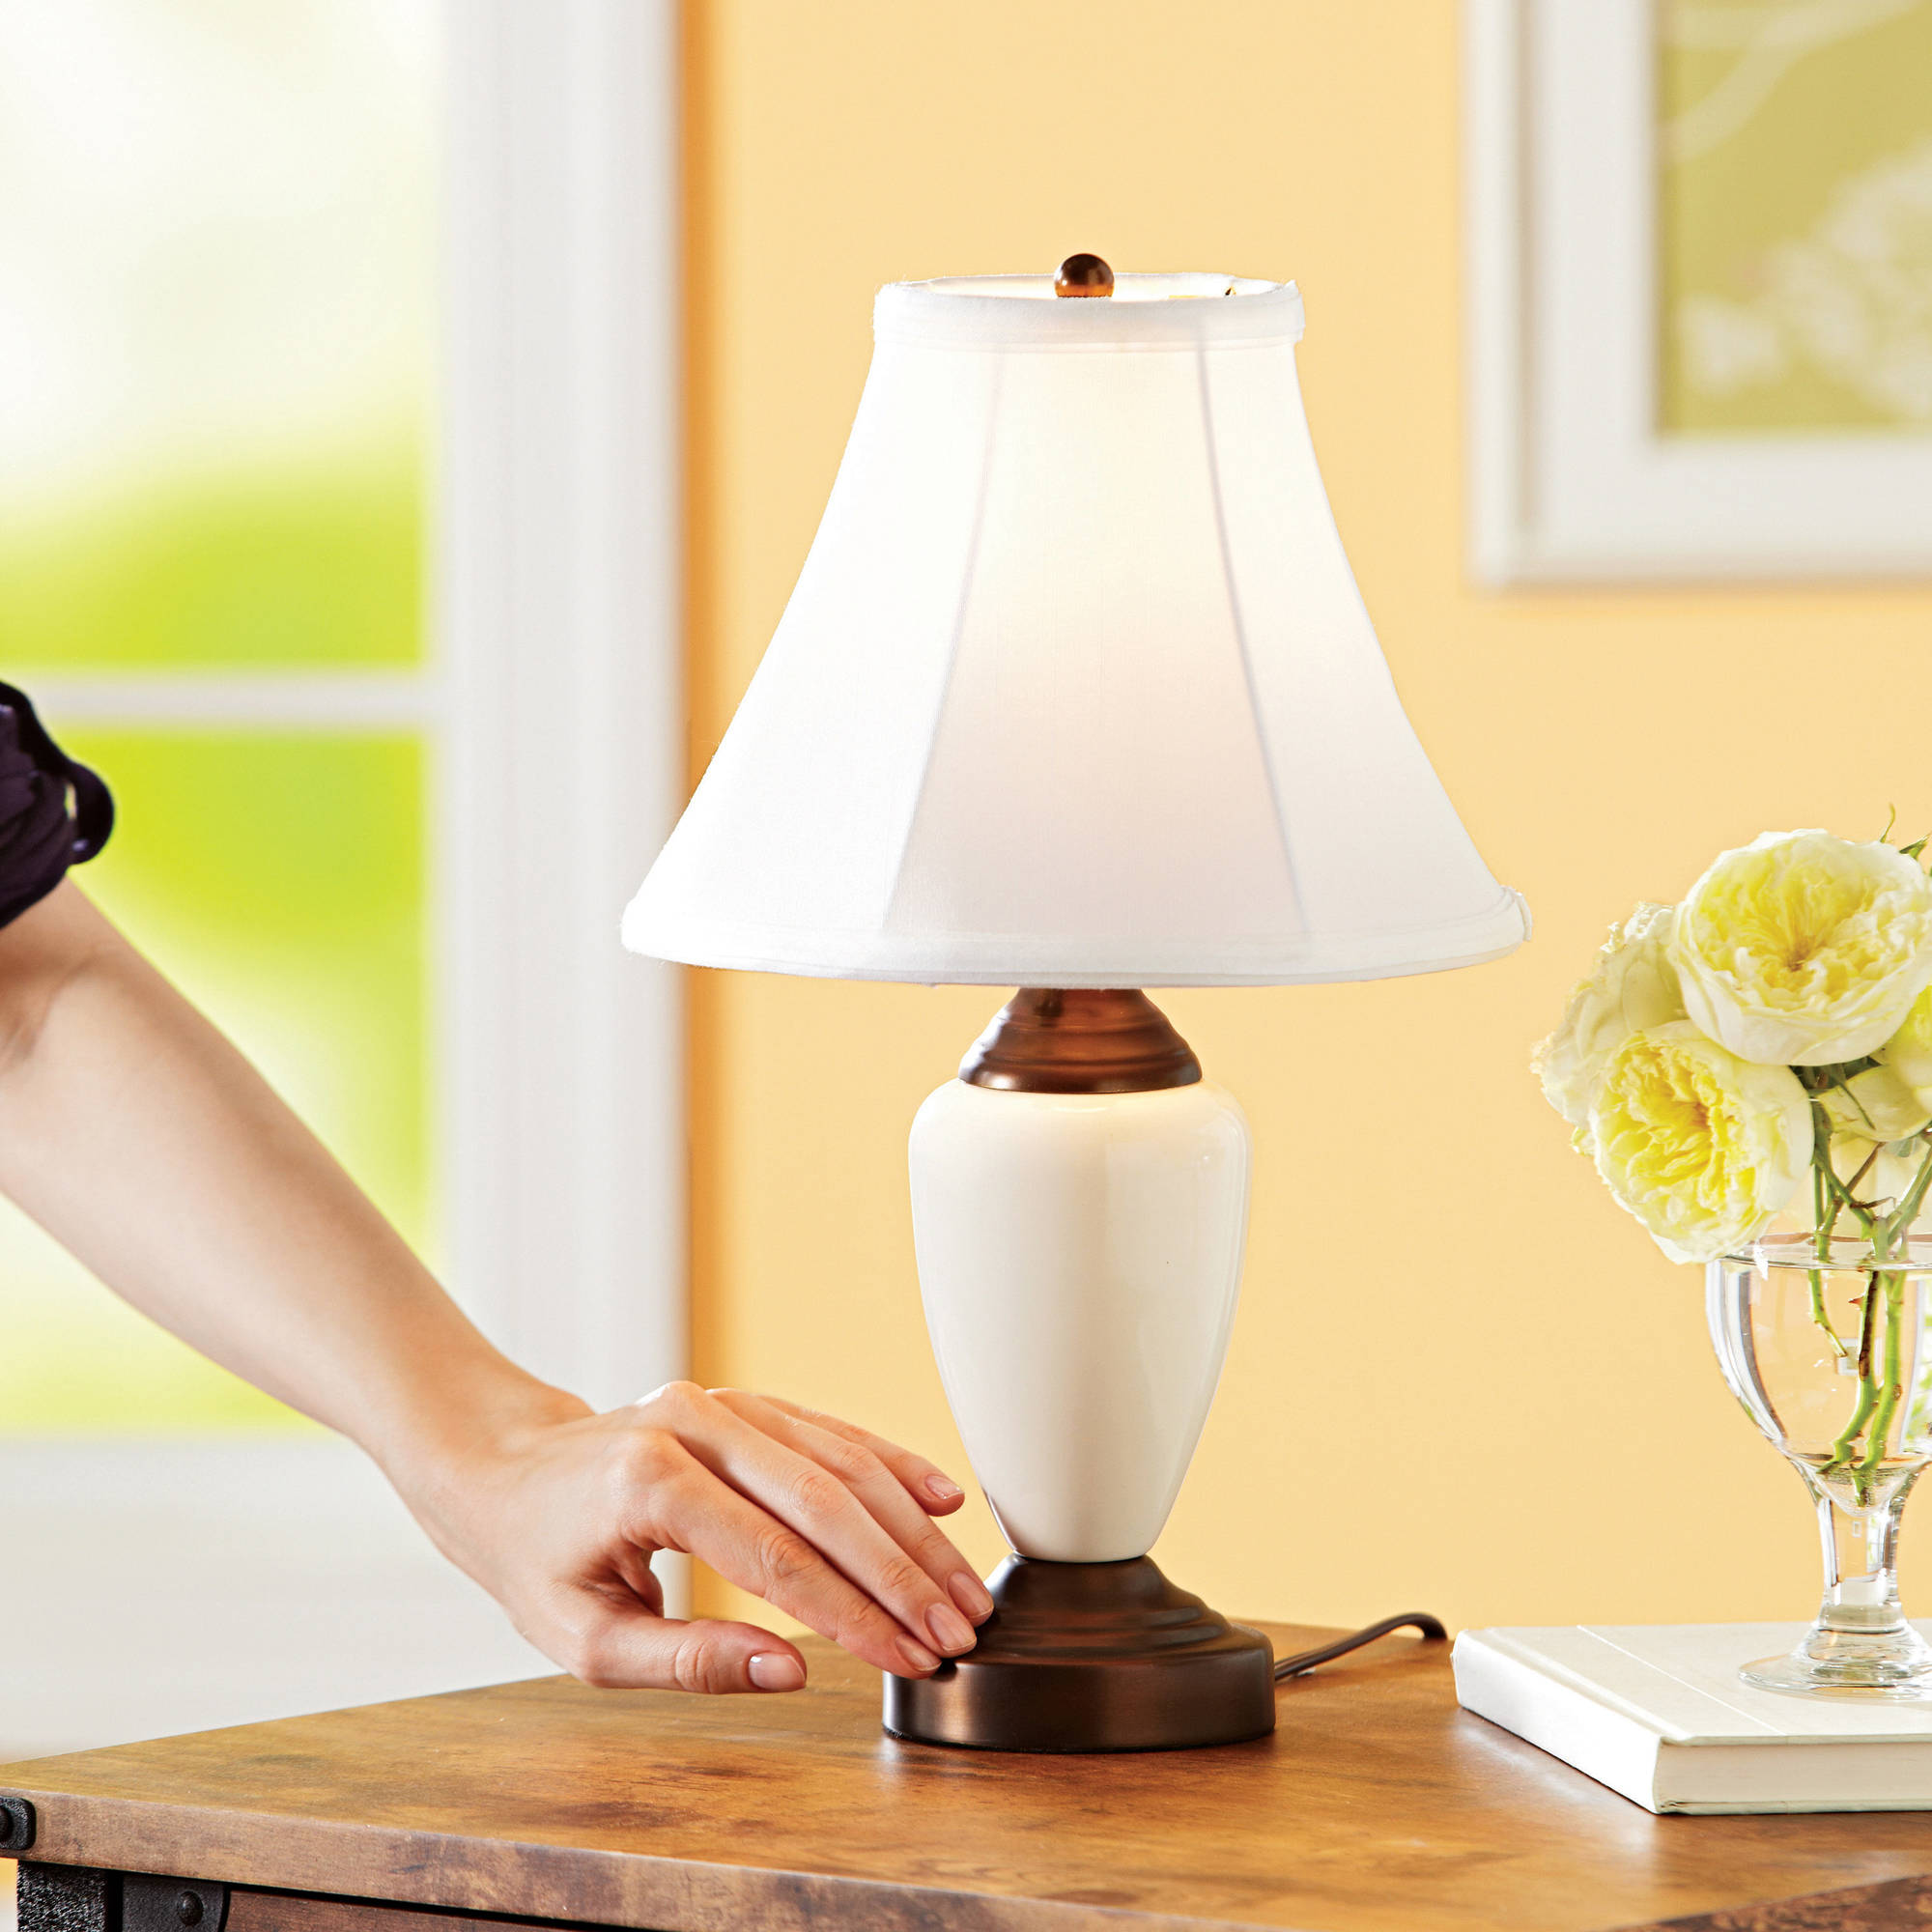 Better Homes and Gardens Touch Lamp